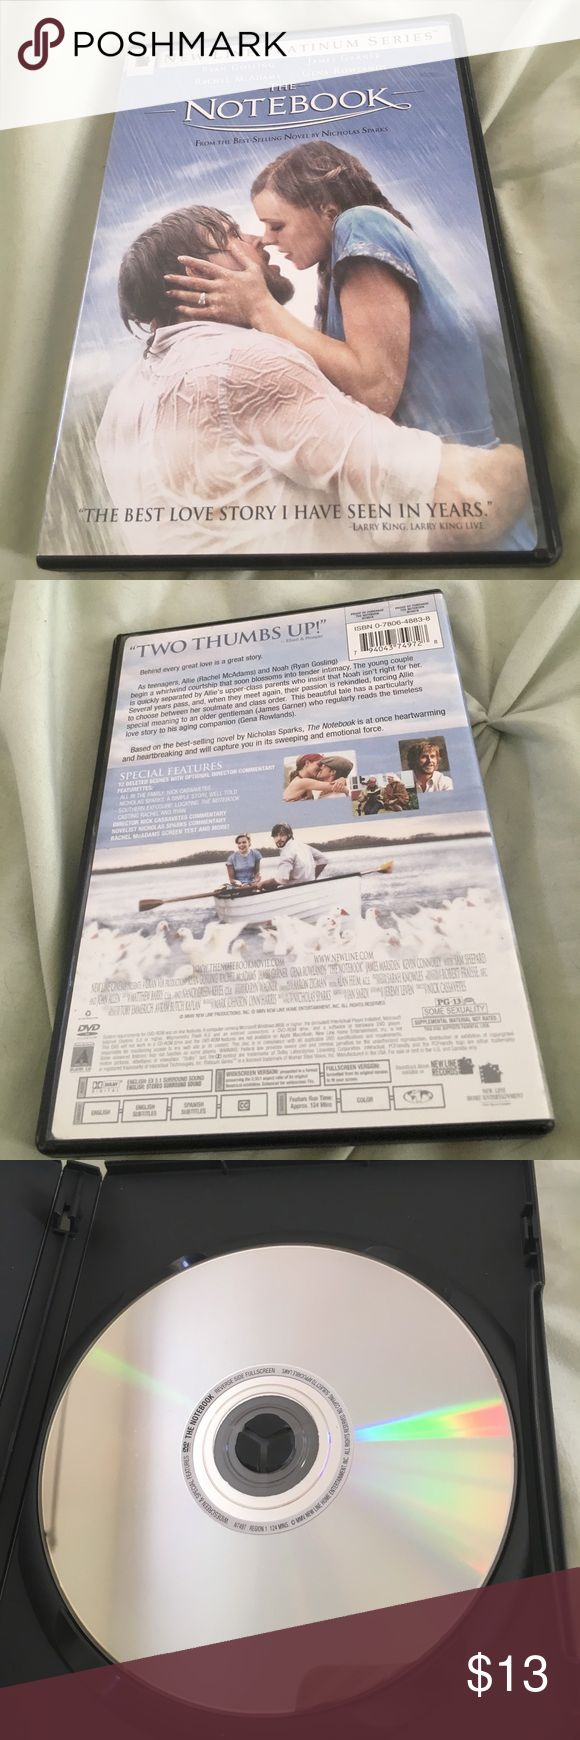 *FINAL PRICE DROP* - The Notebook DVD The Notebook DVD. Comes from best selling Nicholas Sparks Novel. In good condition. Ships same or next day!  I 💓 bundles. Check out the other DVDs listed for good bundle ideas Other